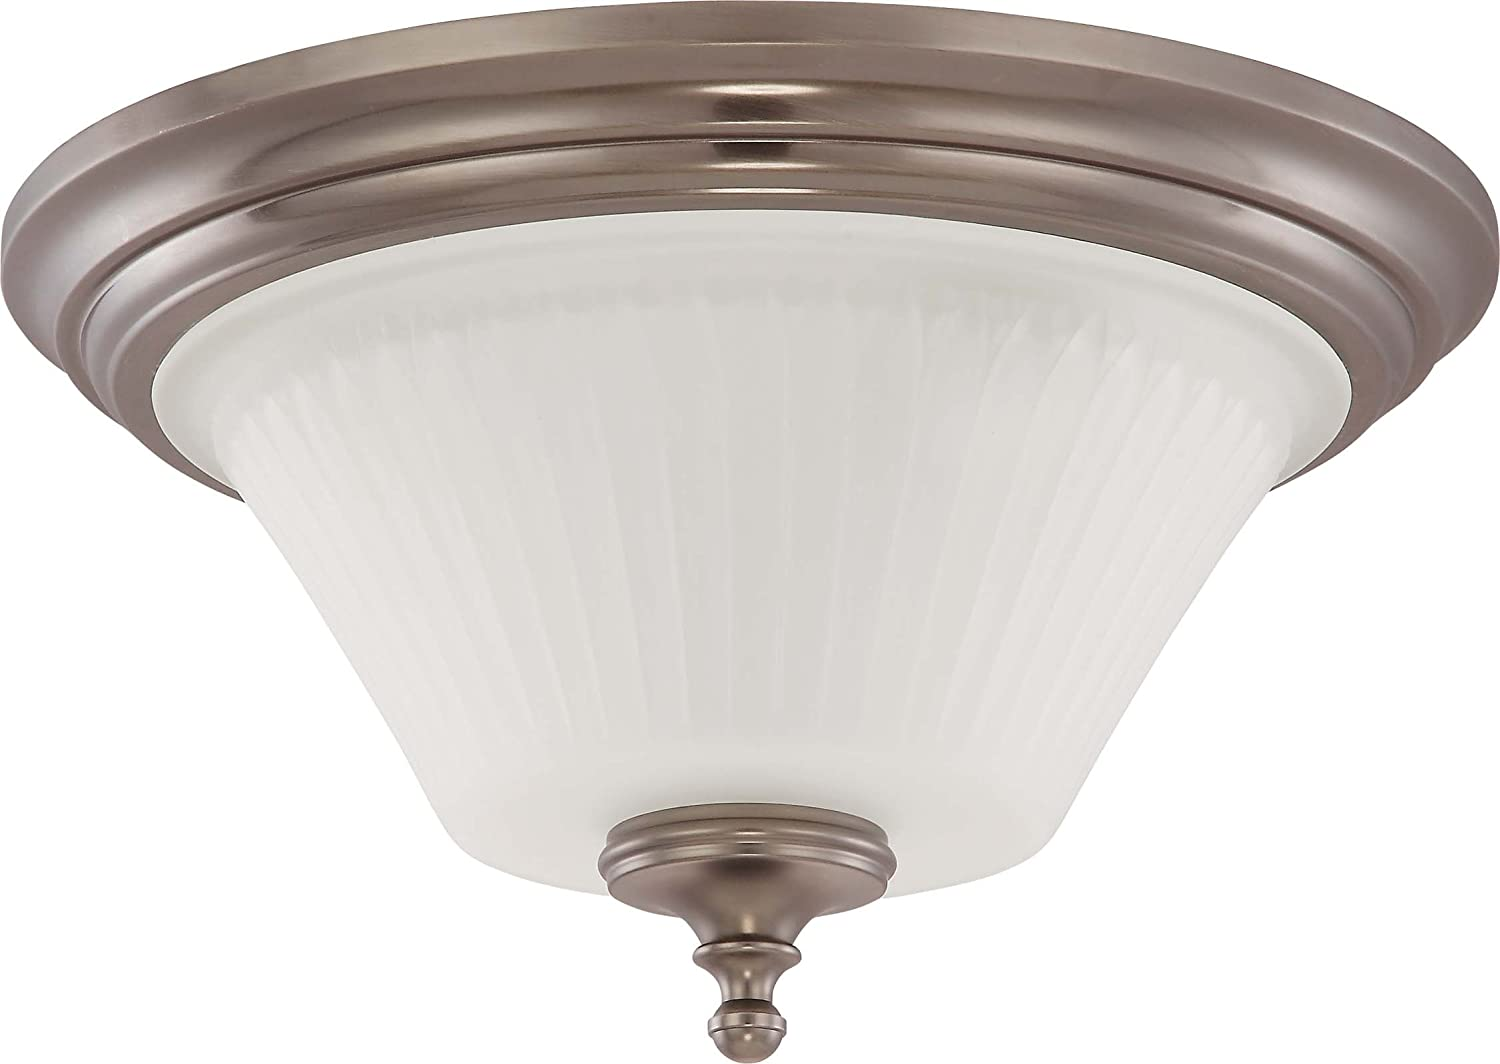 Nuvo lighting 604018 two light teller semi flush dome with frosted nuvo lighting 604018 two light teller semi flush dome with frosted etched glass aged pewter close to ceiling light fixtures amazon arubaitofo Image collections